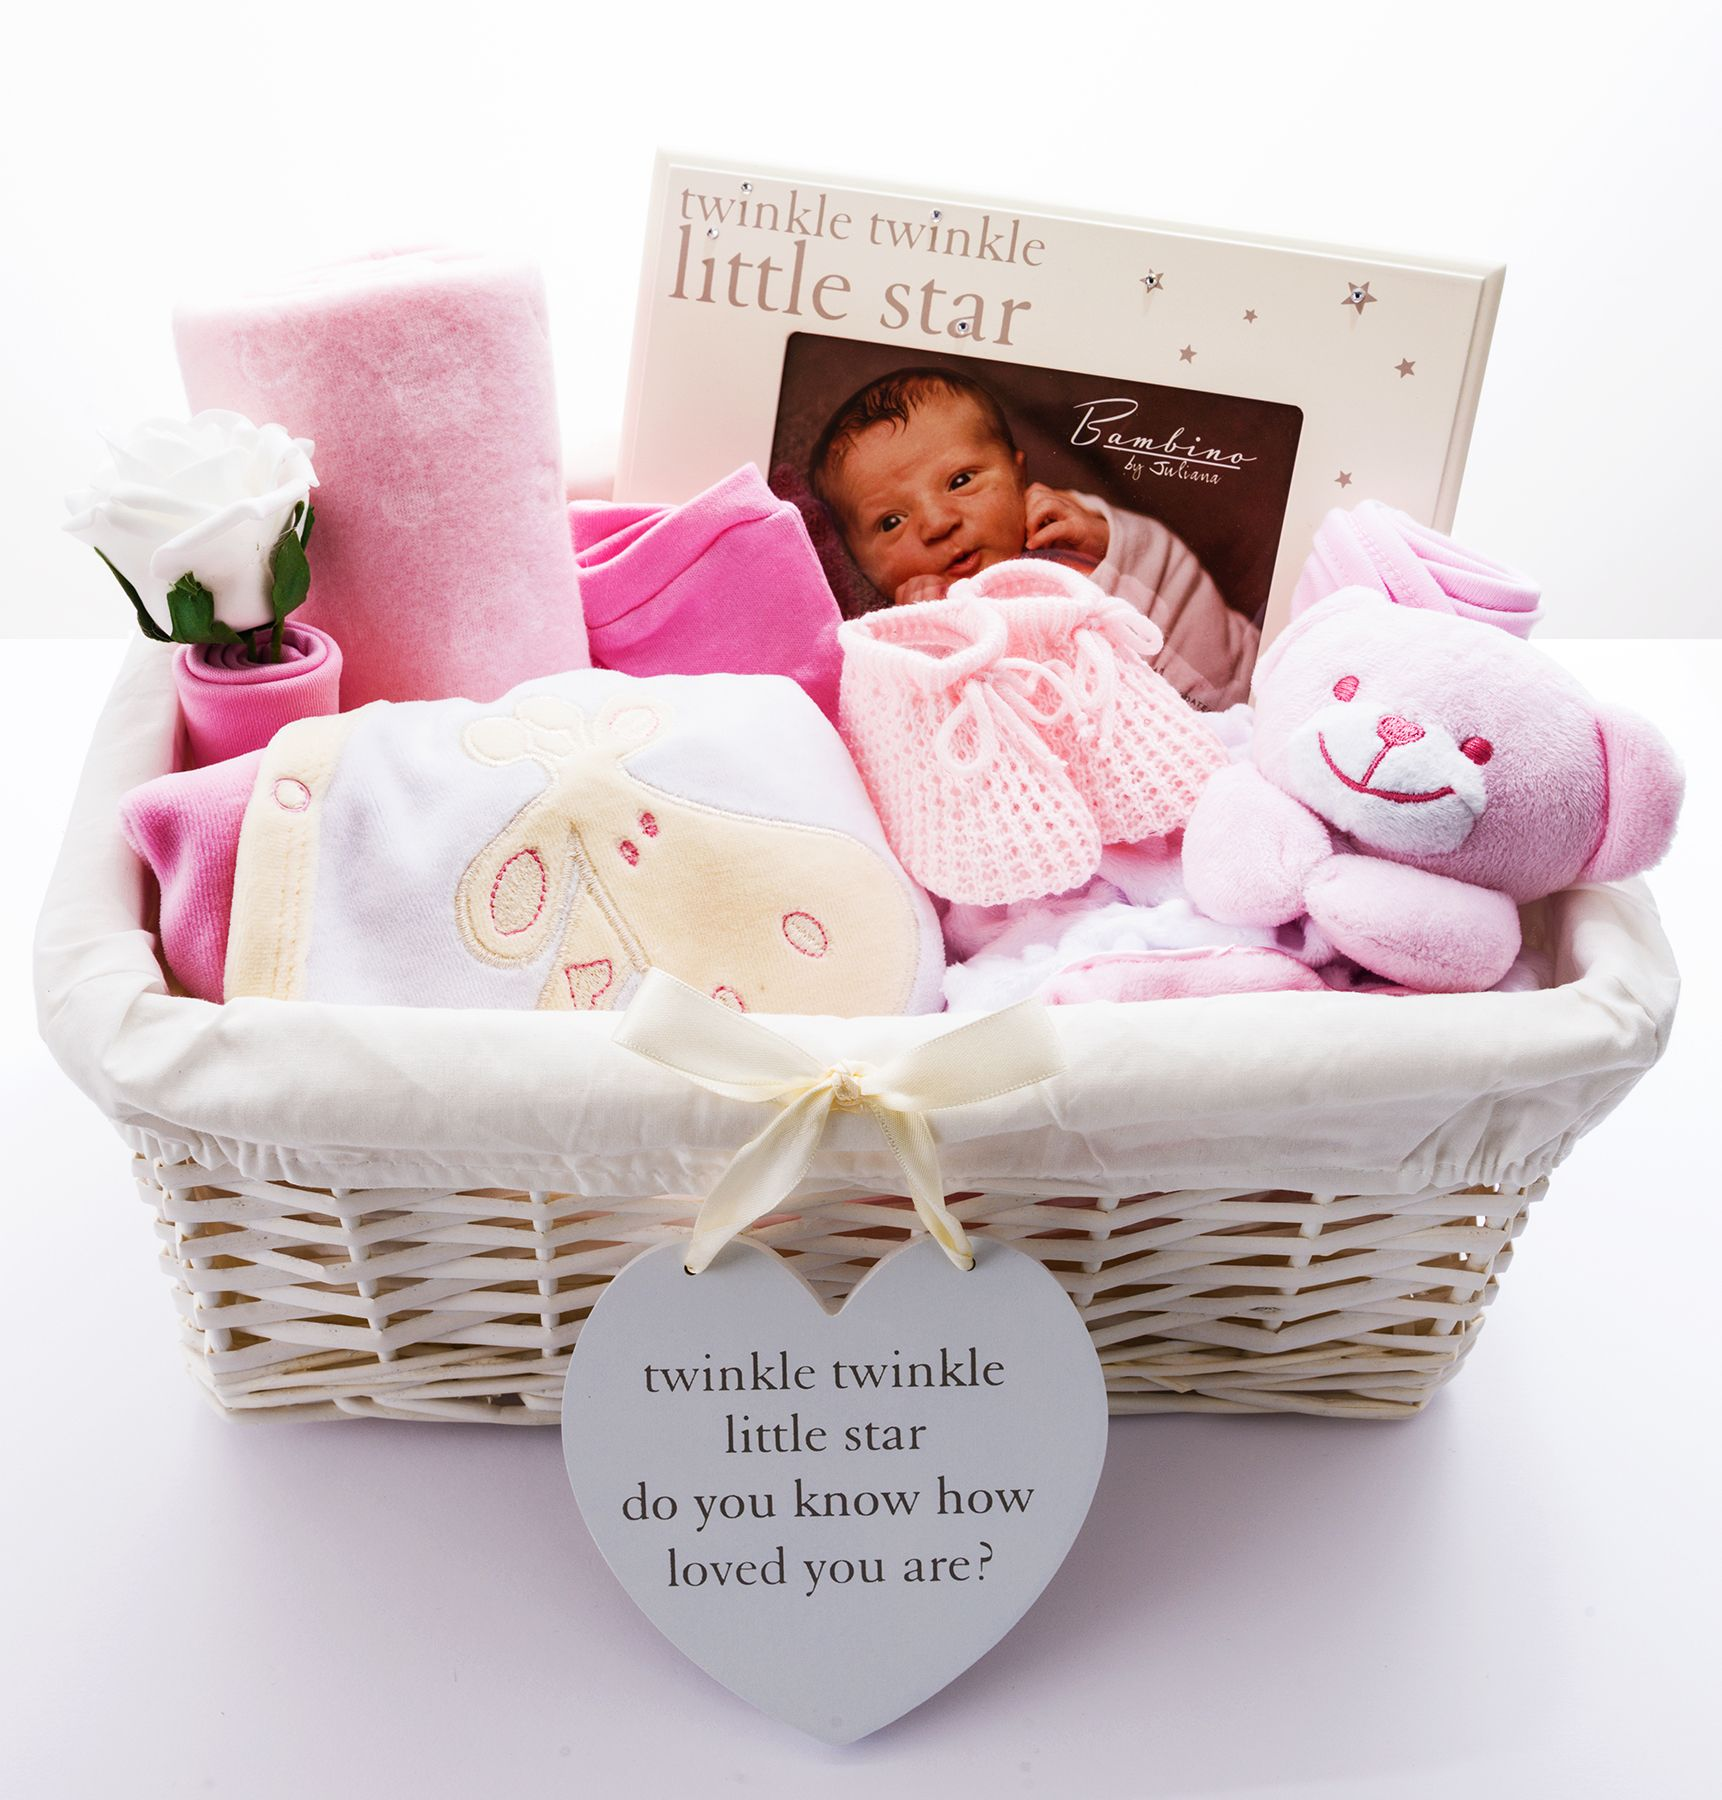 Twinkle twinkle its a girl baby hamper baby hamper baby twinkle twinkle its a girl baby hamper our pretty in pink hamper is solutioingenieria Gallery